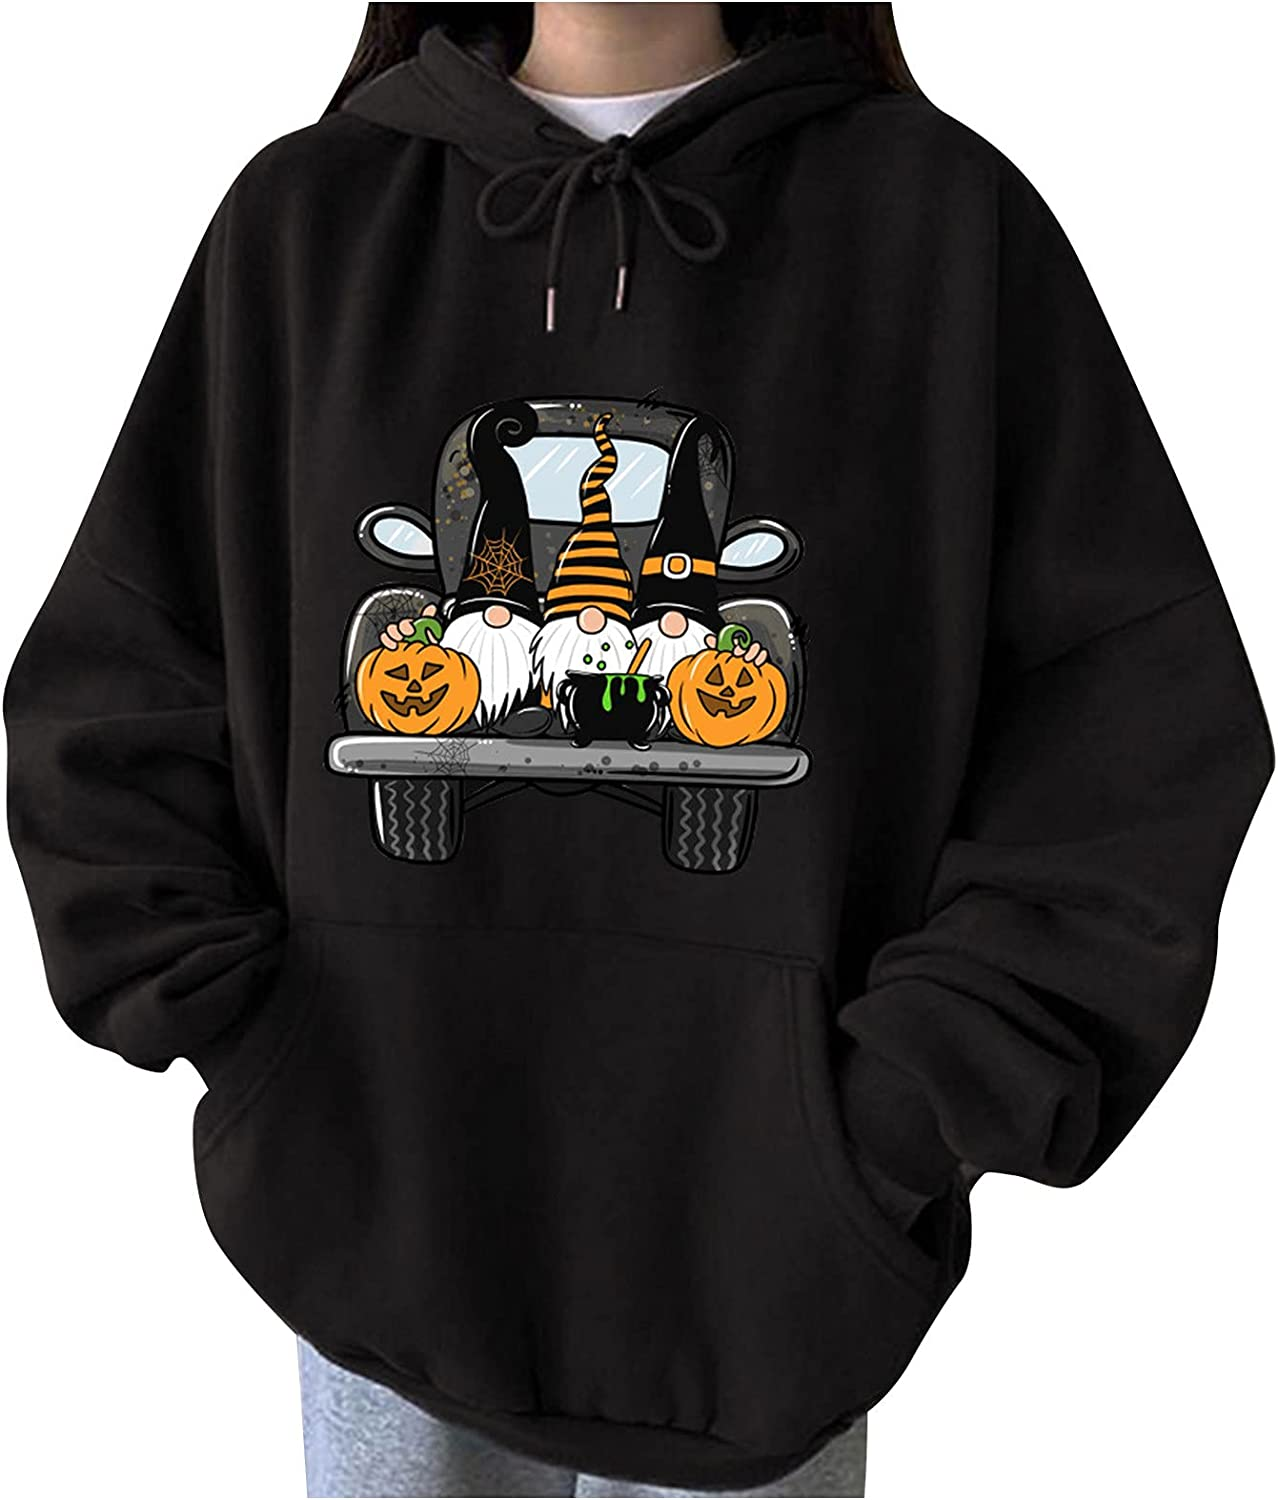 Couples Plus Size Halloween Sweatshirts, Funny Graphic Casual Blouse Long Batwing Sleeve Hide Belly Fall Pullover Tops